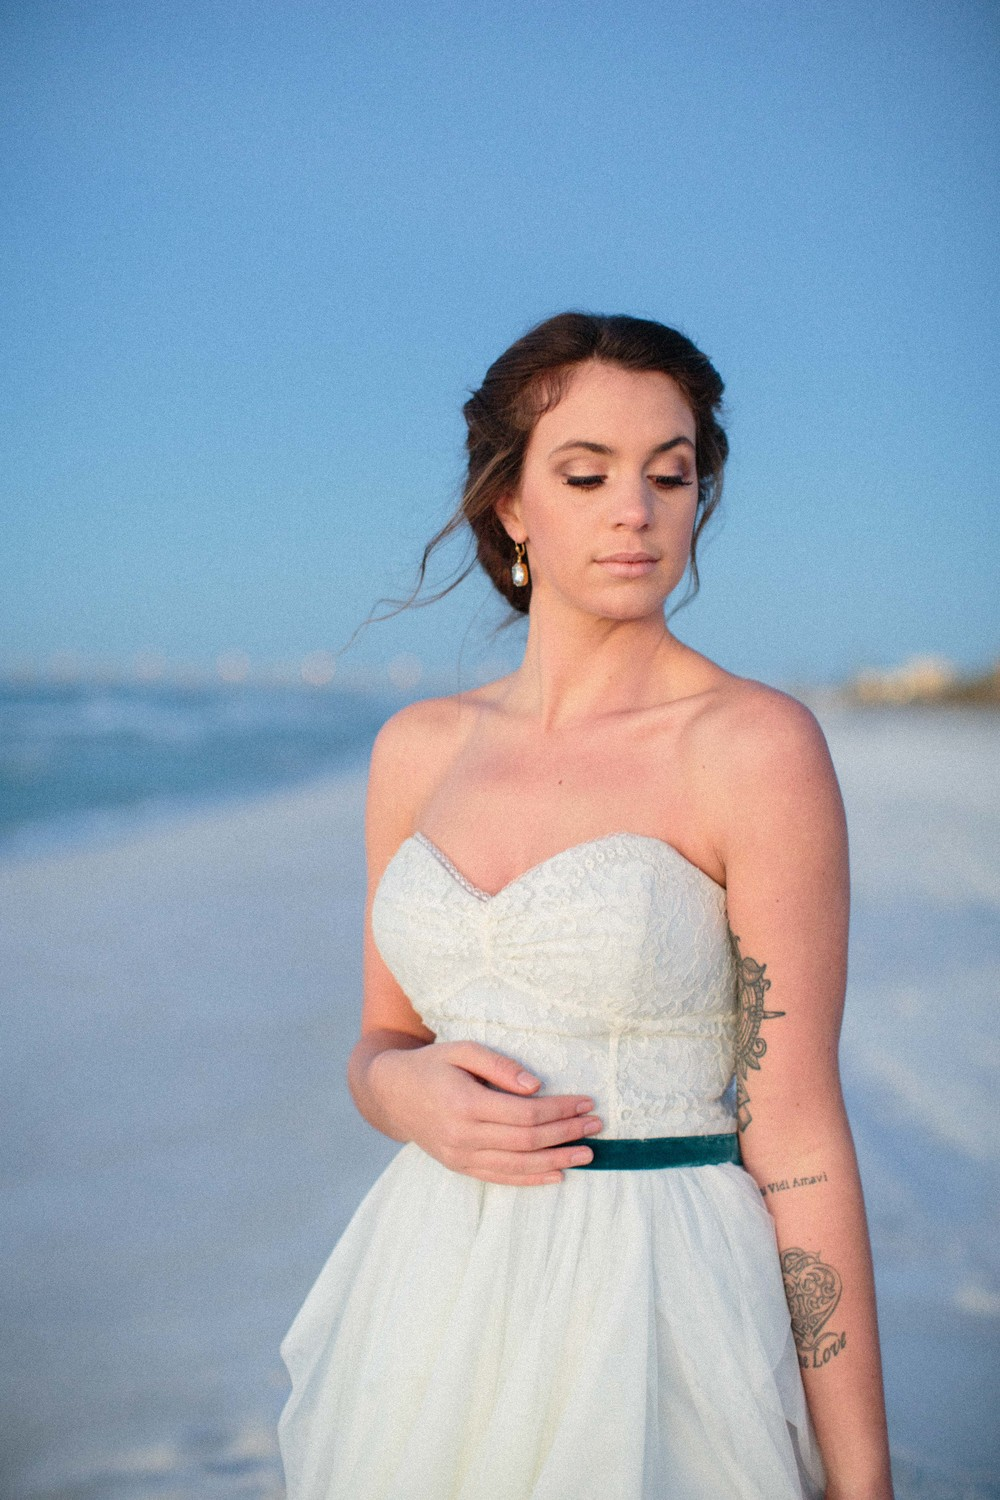 Ais-Portraits-ivey-weddings-and-events-ivory-and-beau-bridal-boutique-sunrise-wedding-sunrise-bridal-session-blue-dress-rebecca-schoneveld-wedding-dress-blue-velvet-wedding-beach-wedding-savannah-bridal-boutique-savannah-wedding-1.jpg